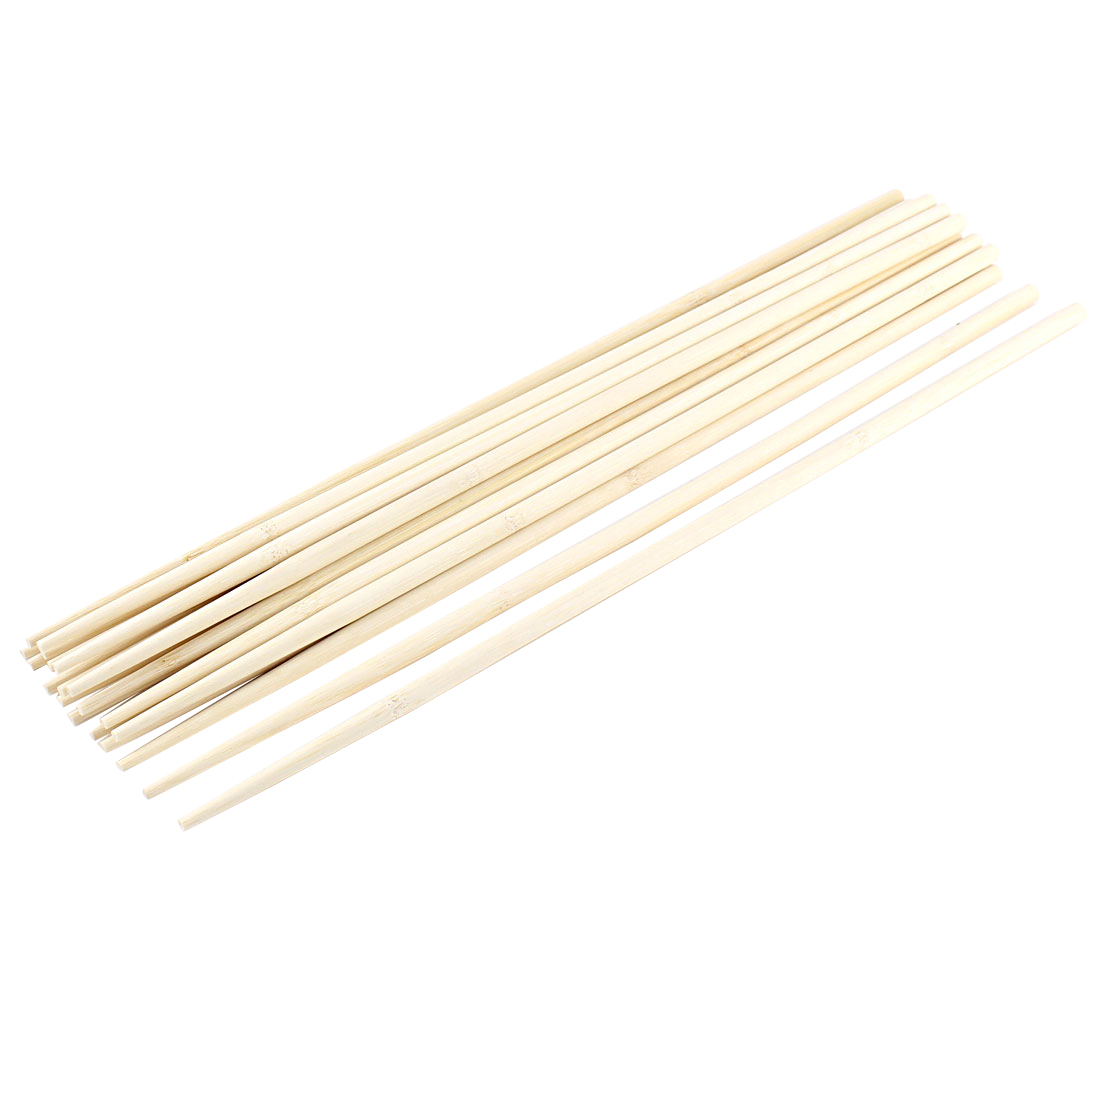 Kitchen Hot Pot Cooking Wooden Noodles Chopsticks 45cm Length 10 Pairs